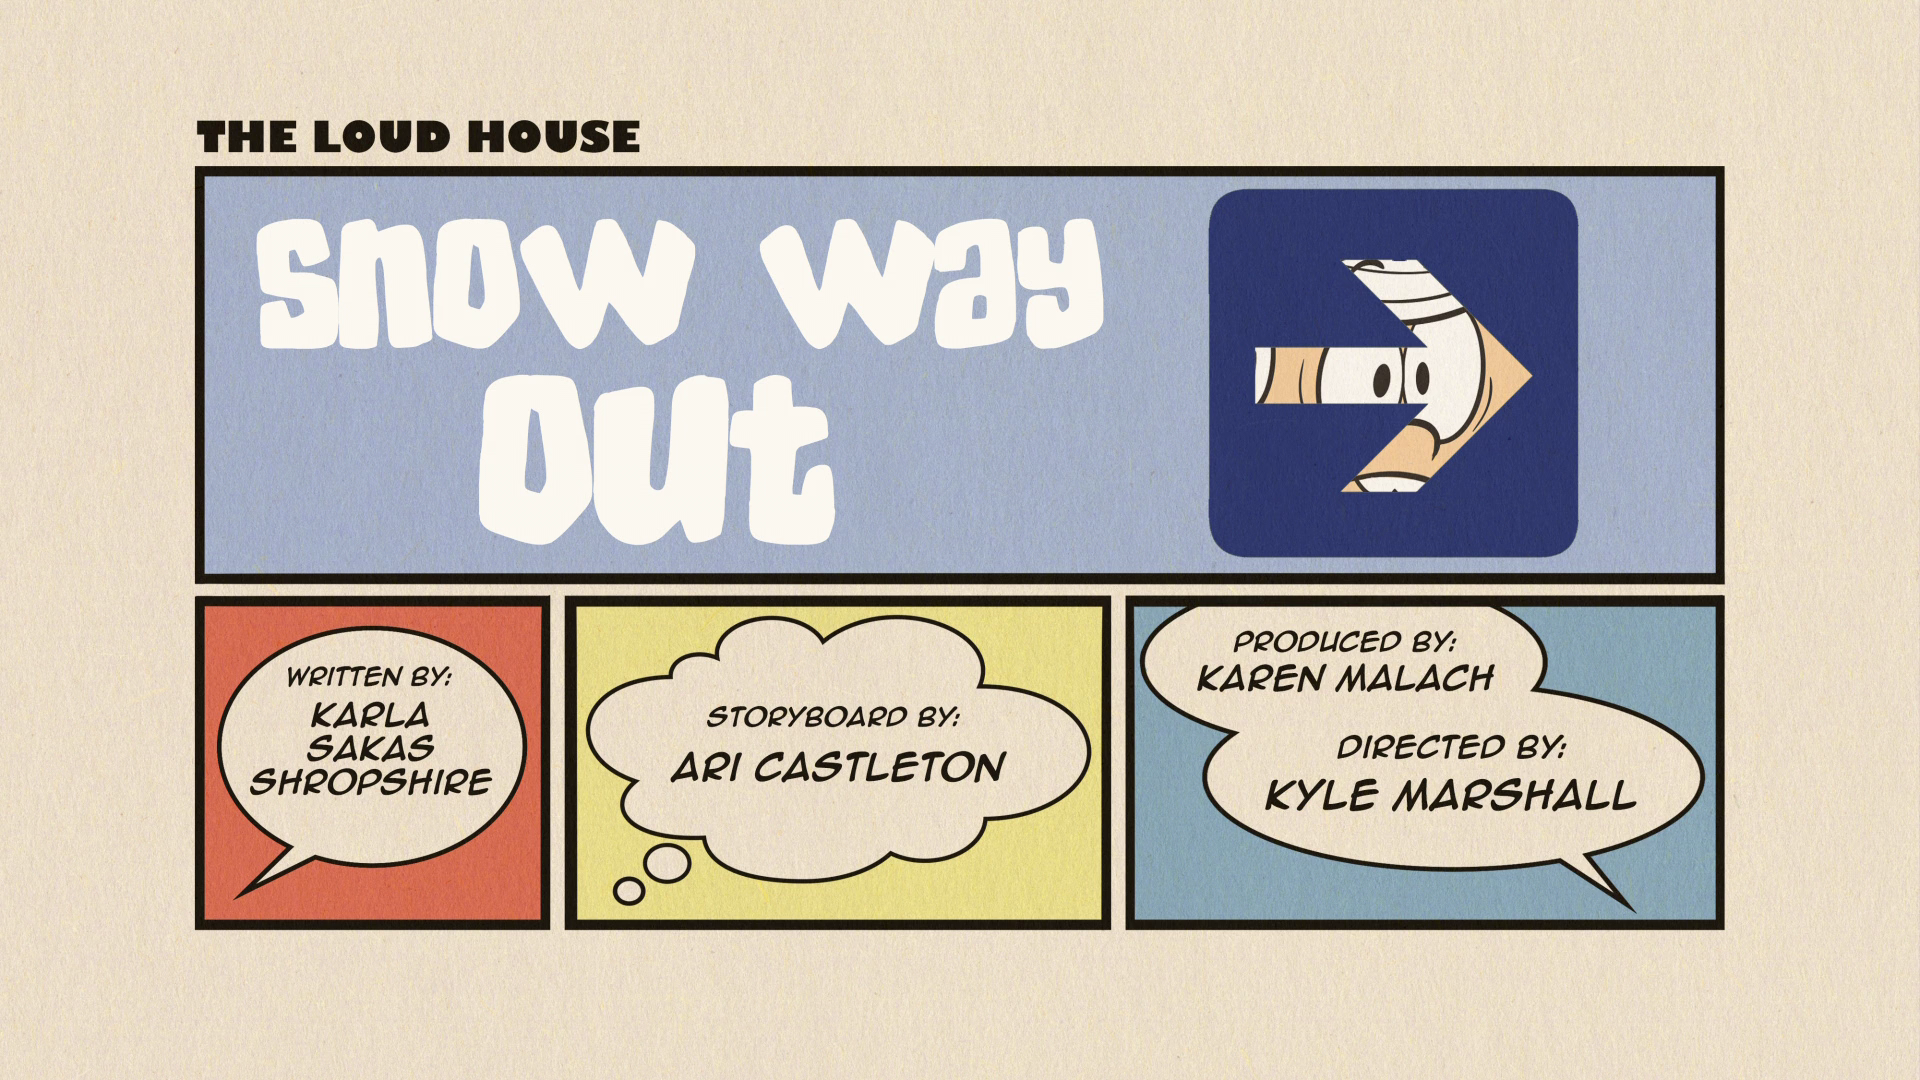 snow way out loud house script